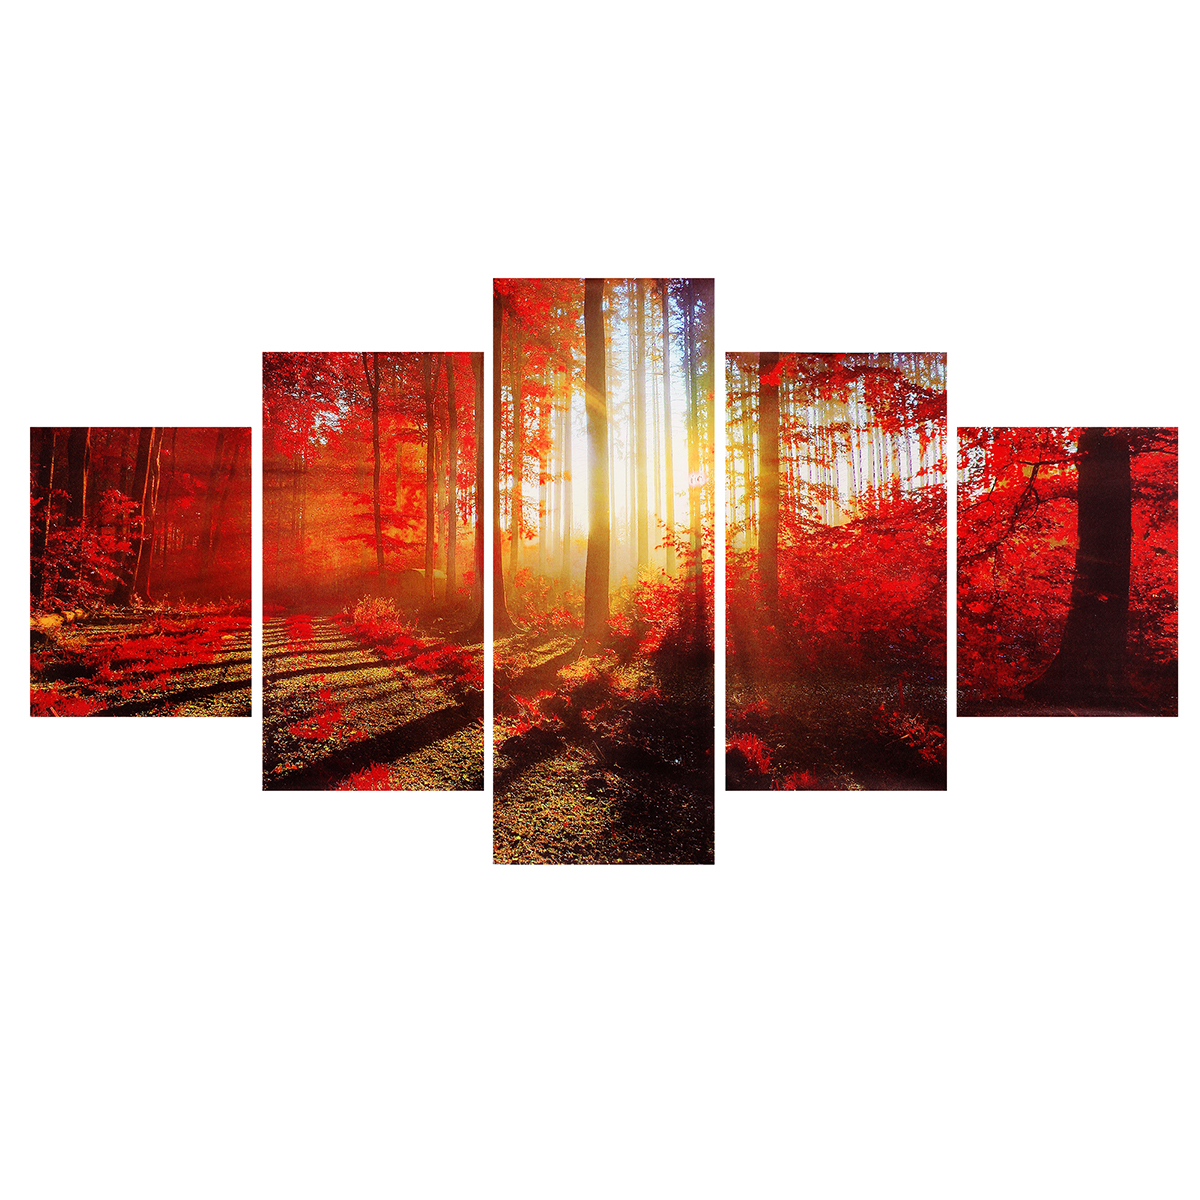 5 Pcs Frameless Canvas Prints Pictures,Available in various Pattern Morden  Abstract Paintings, Canvas Wall Art, Home Decor - Walmart.com - Walmart.com